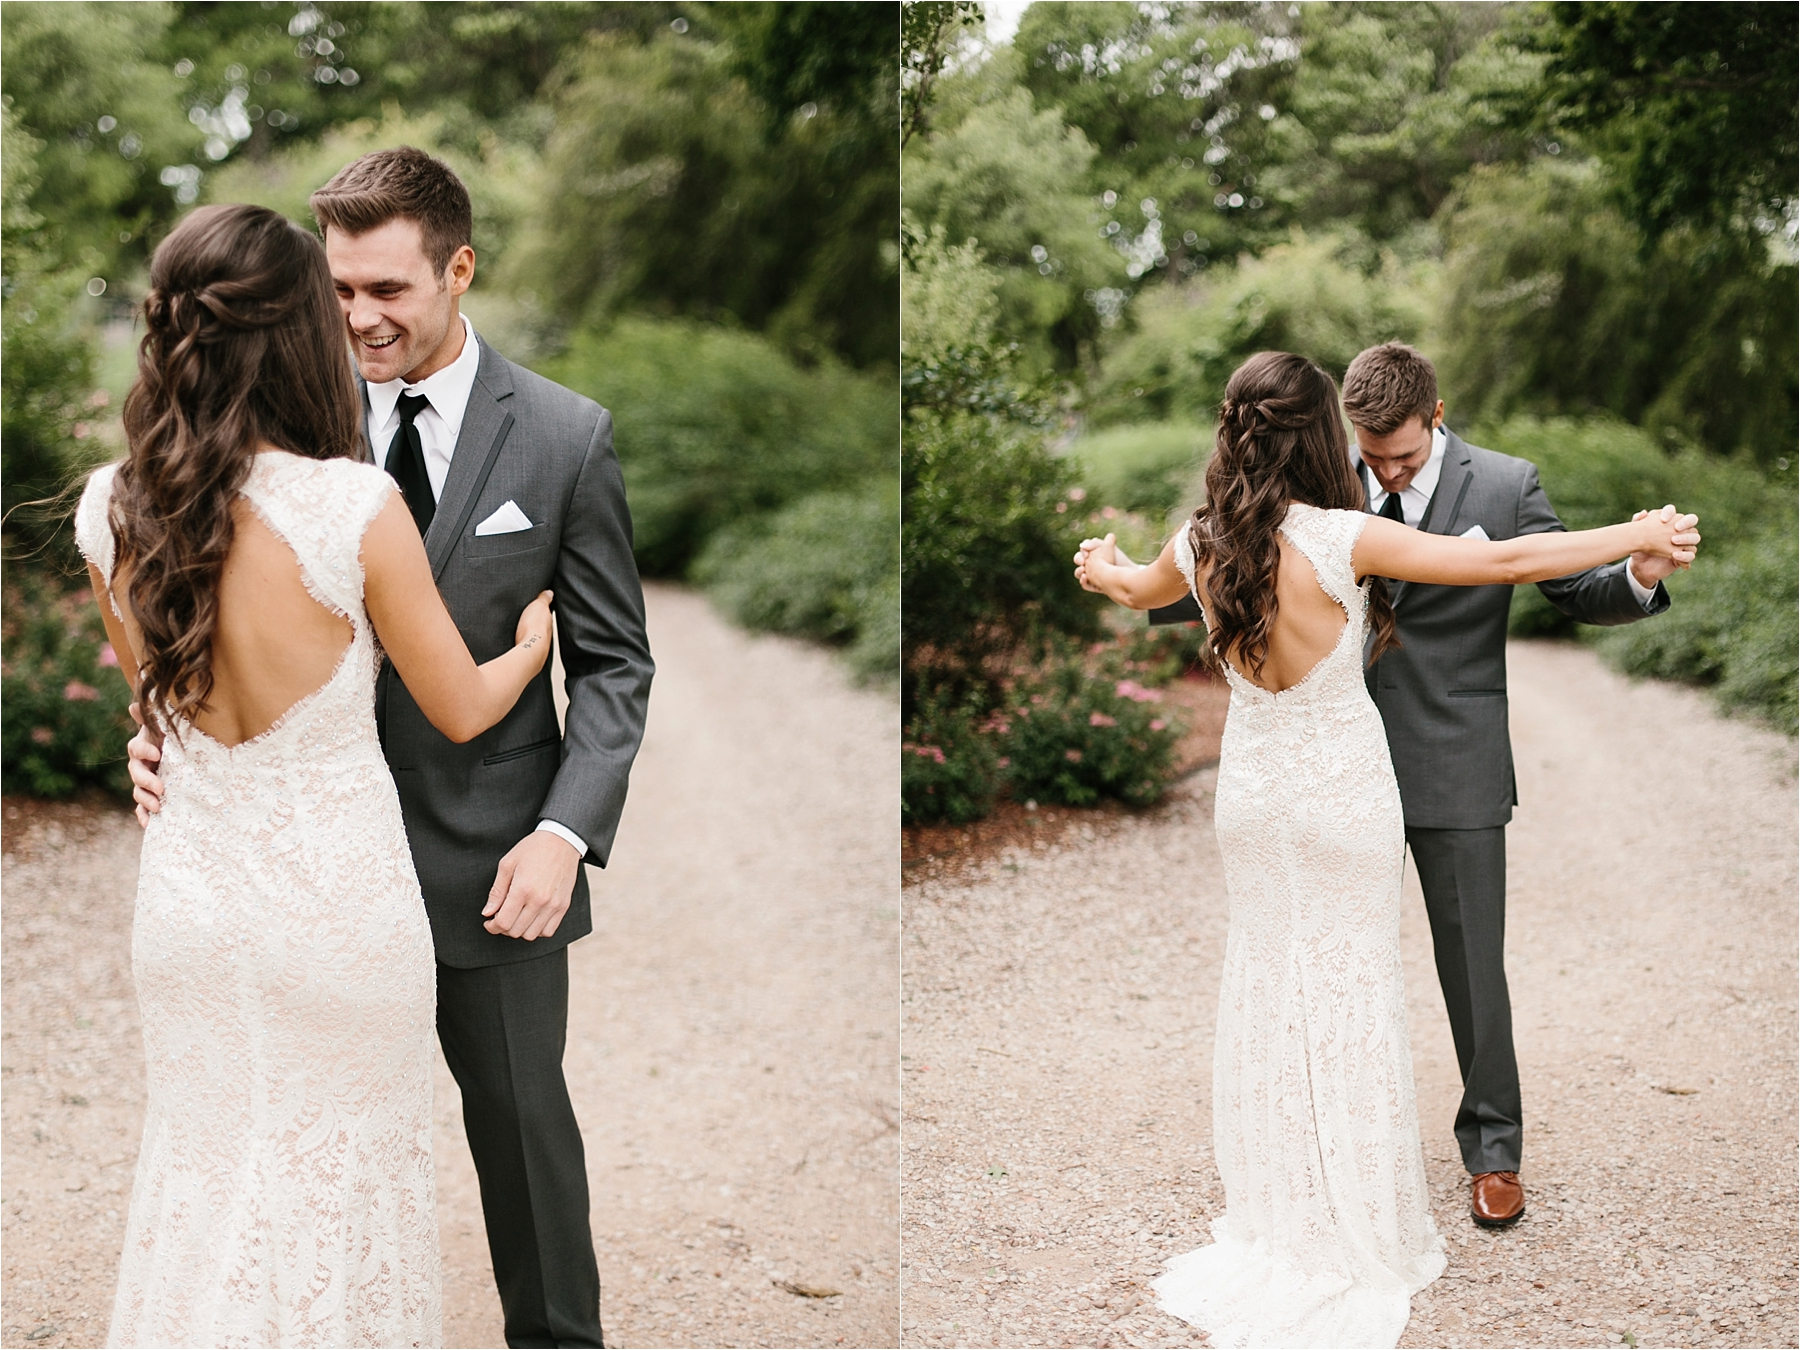 Devyn + Caden __ a Dallas Arboretum Garden Style Wedding by North Texas Wedding Photographer Rachel Meagan Photography __ 017